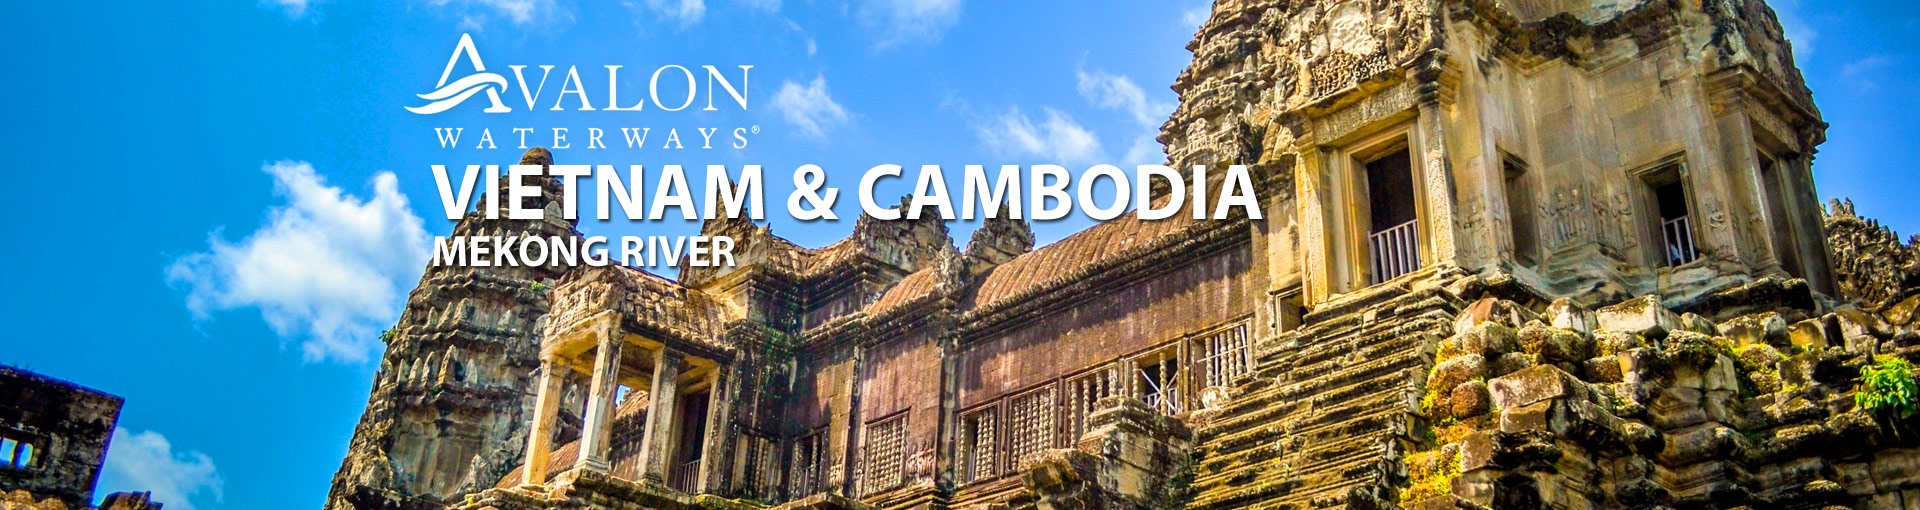 Avalon Waterways River Cruises to Vietnam and Cambodia